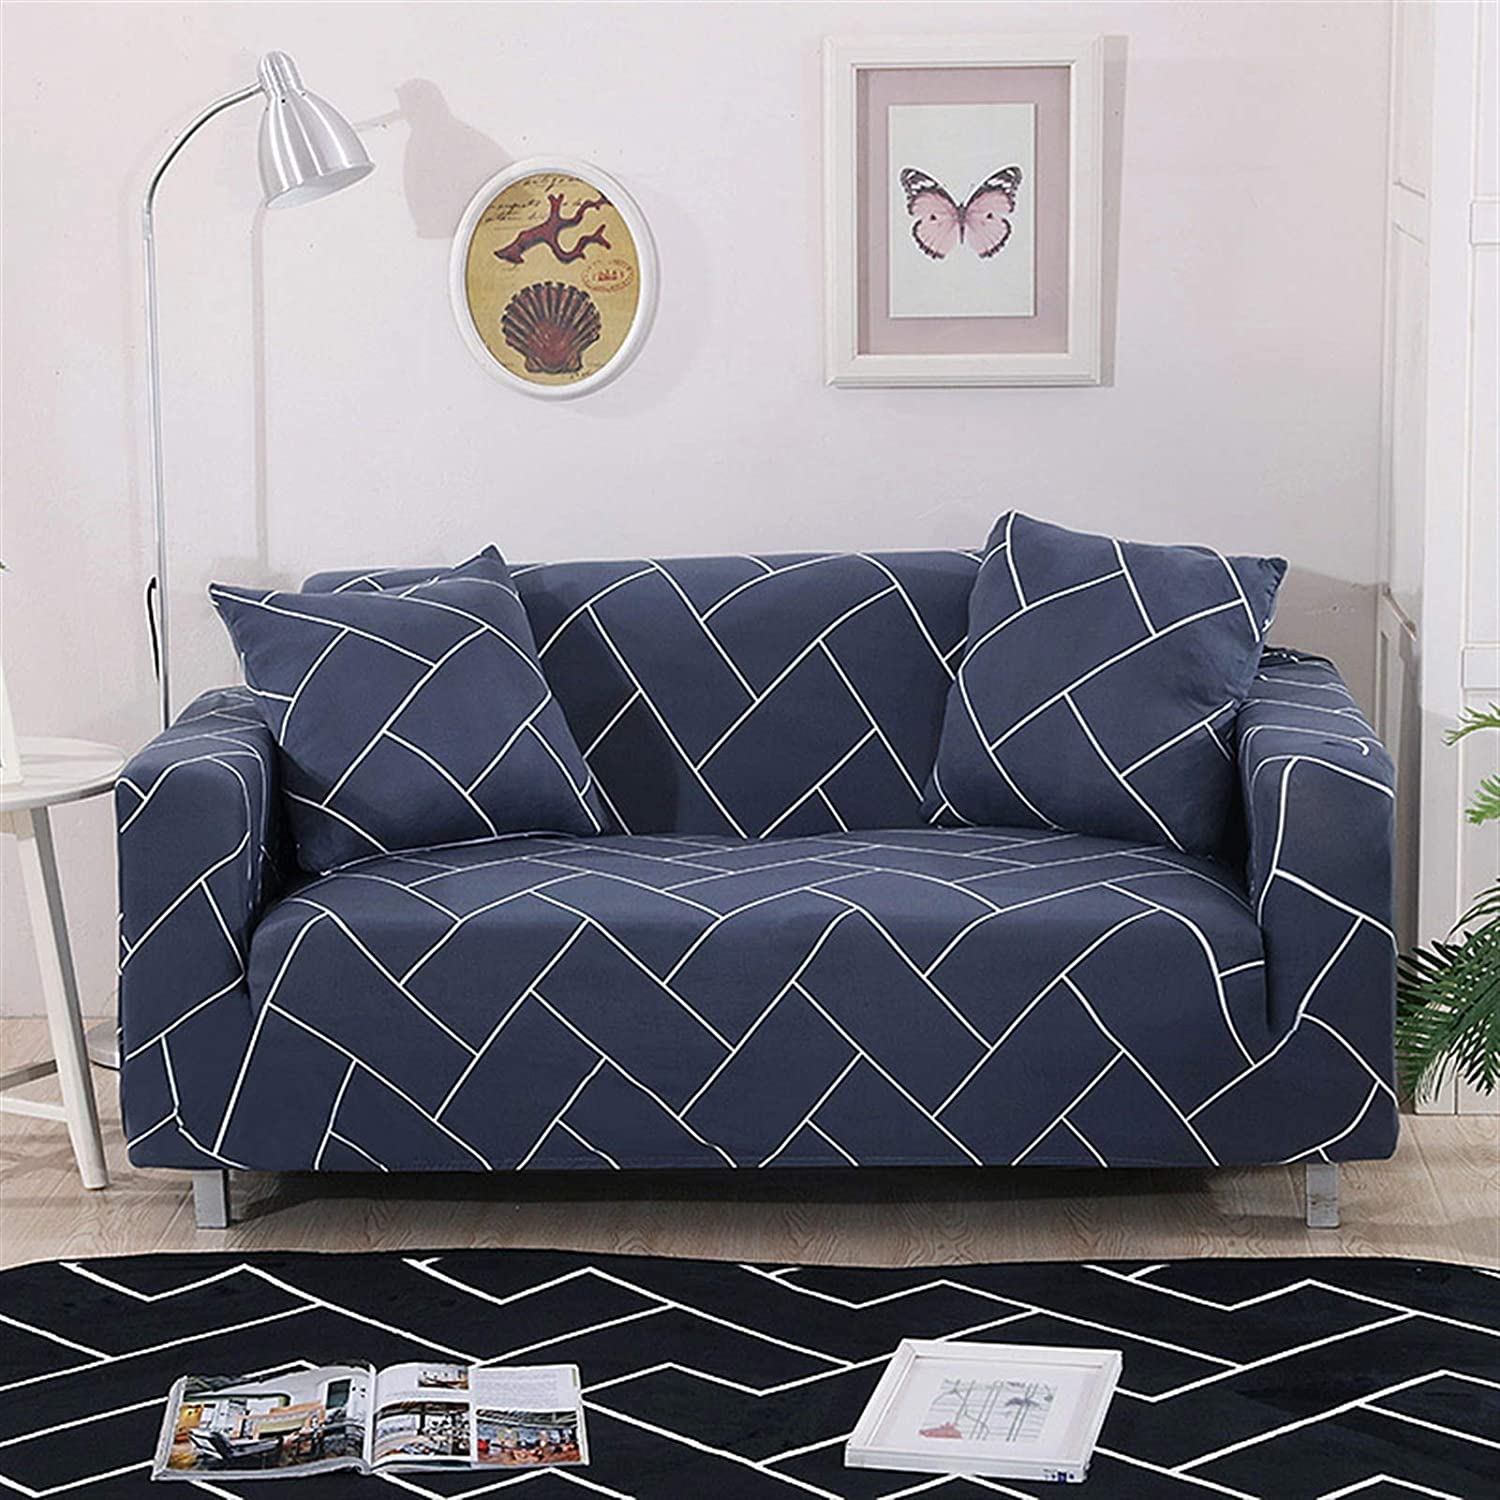 kengbi Easy to Install and Limited Special Price Cover,P Comfortable Cover famous Sofa